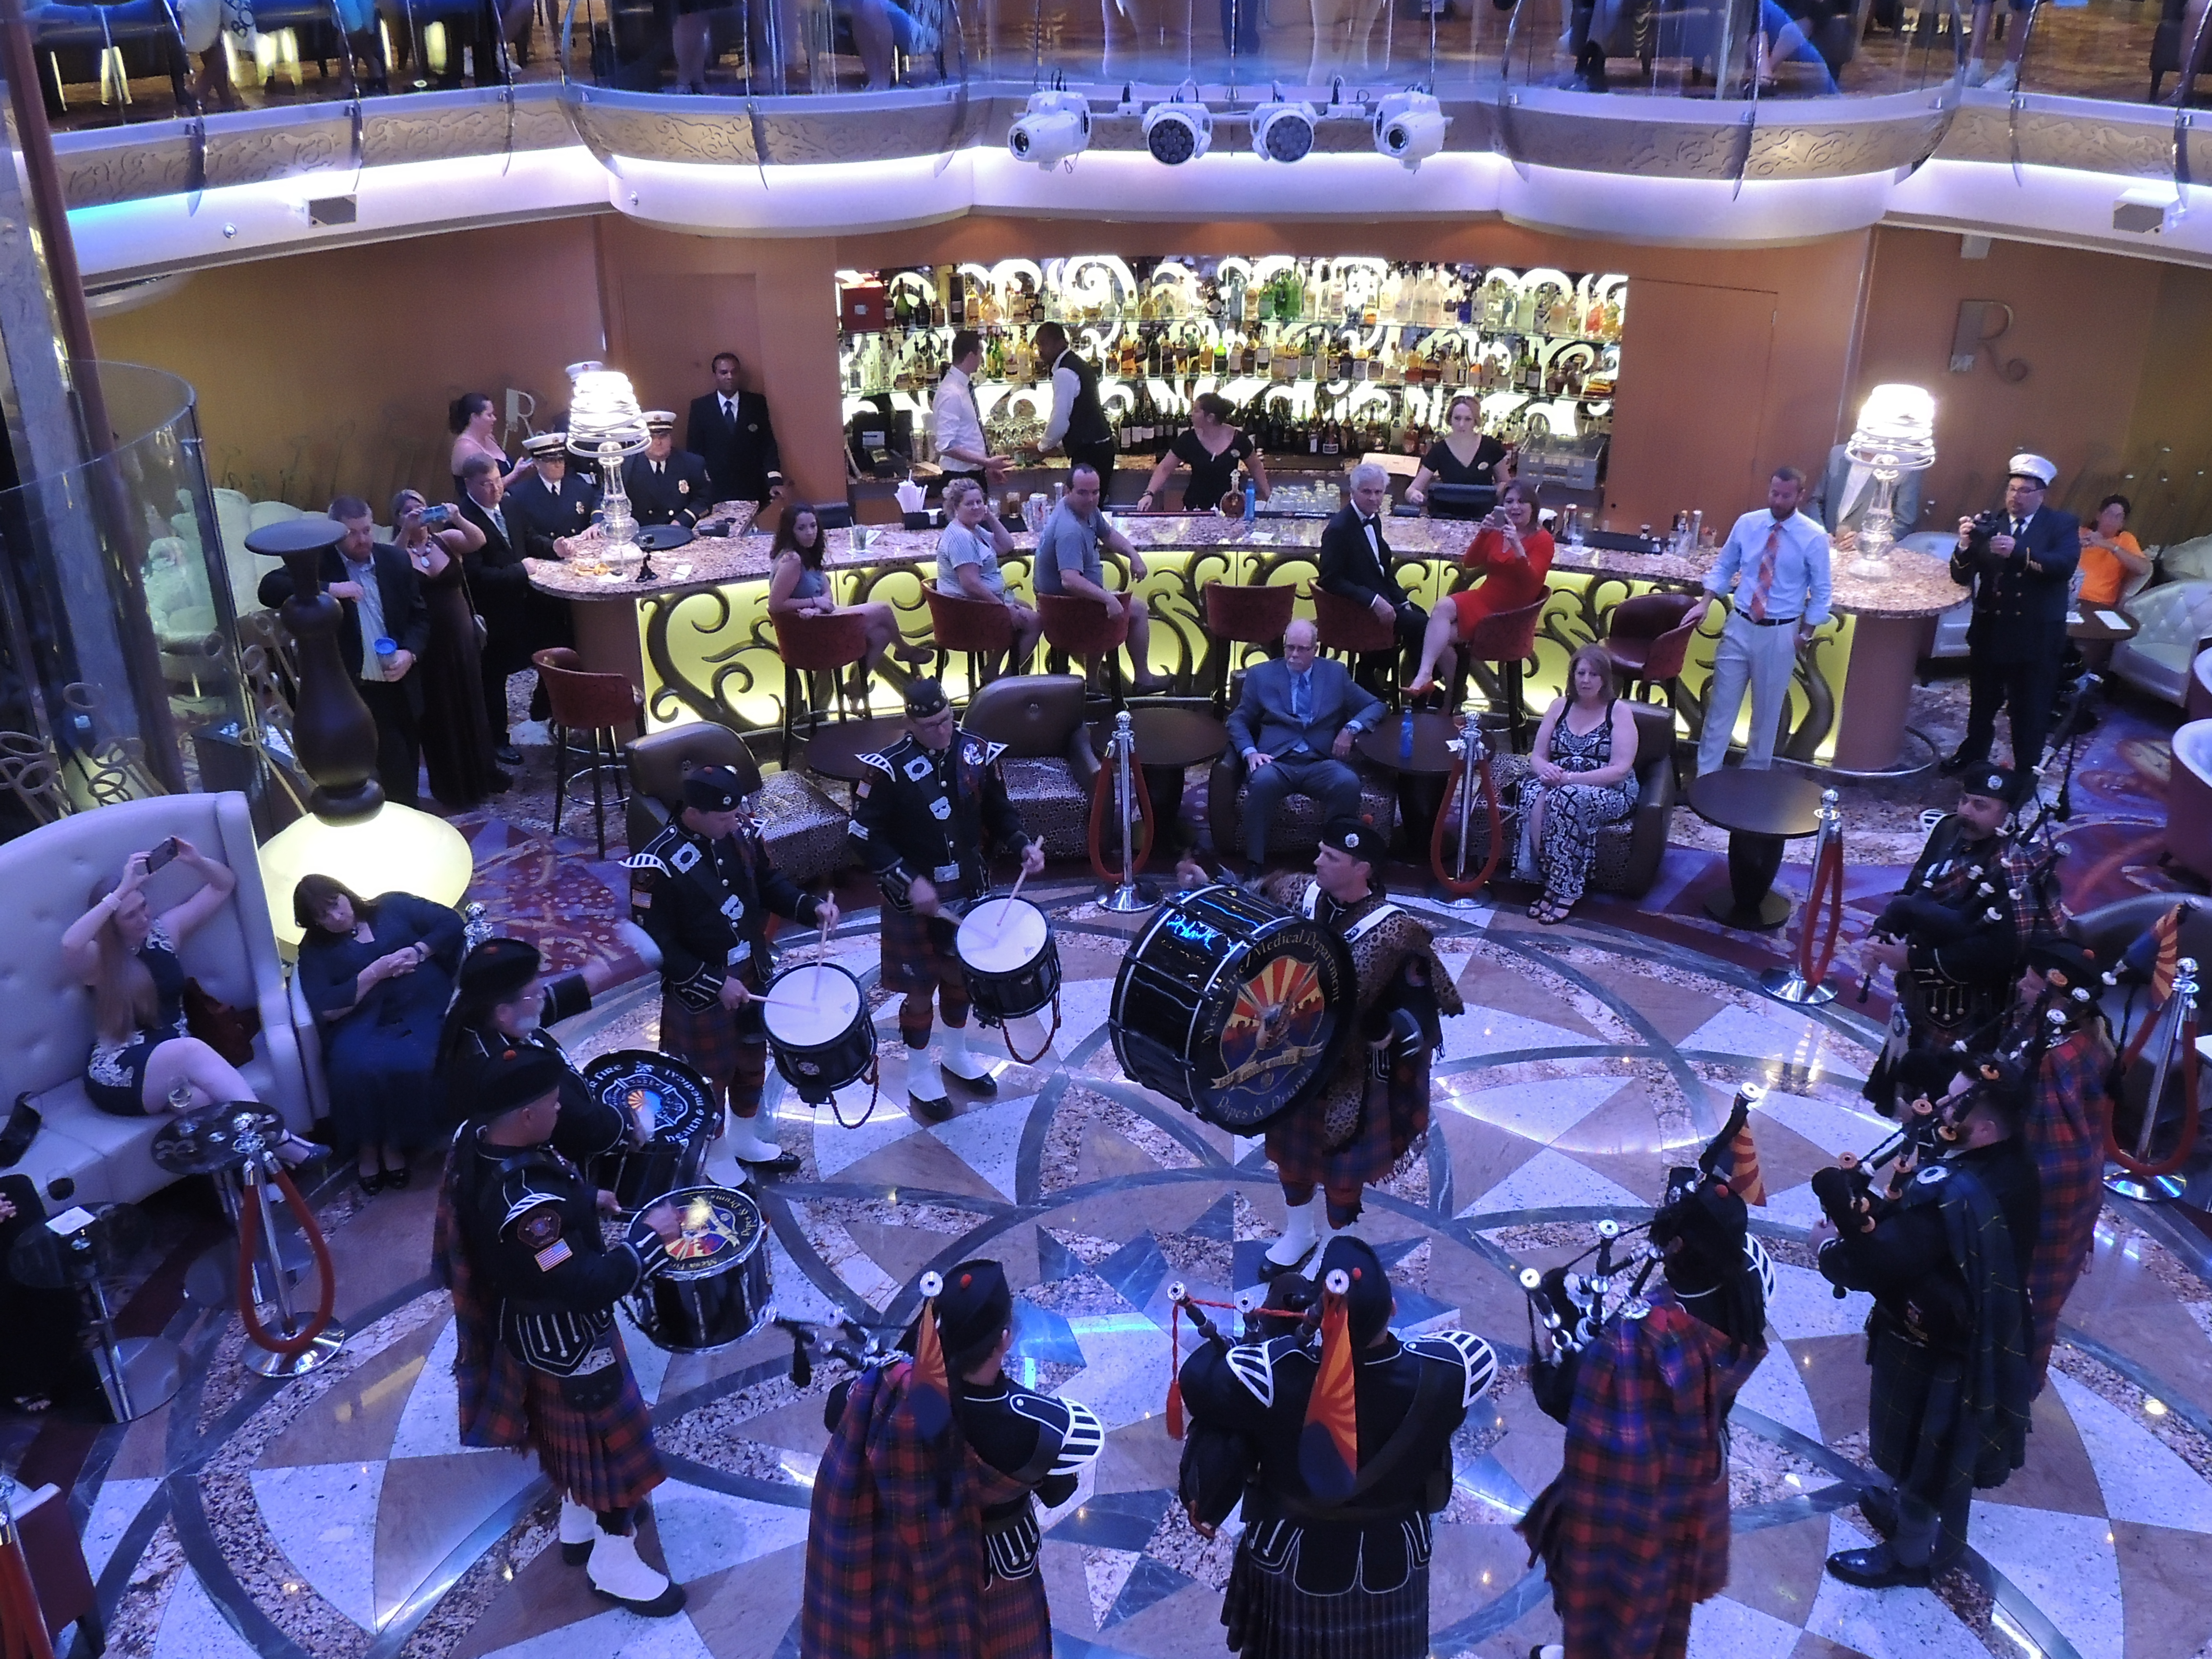 Pipes & Drums Performances